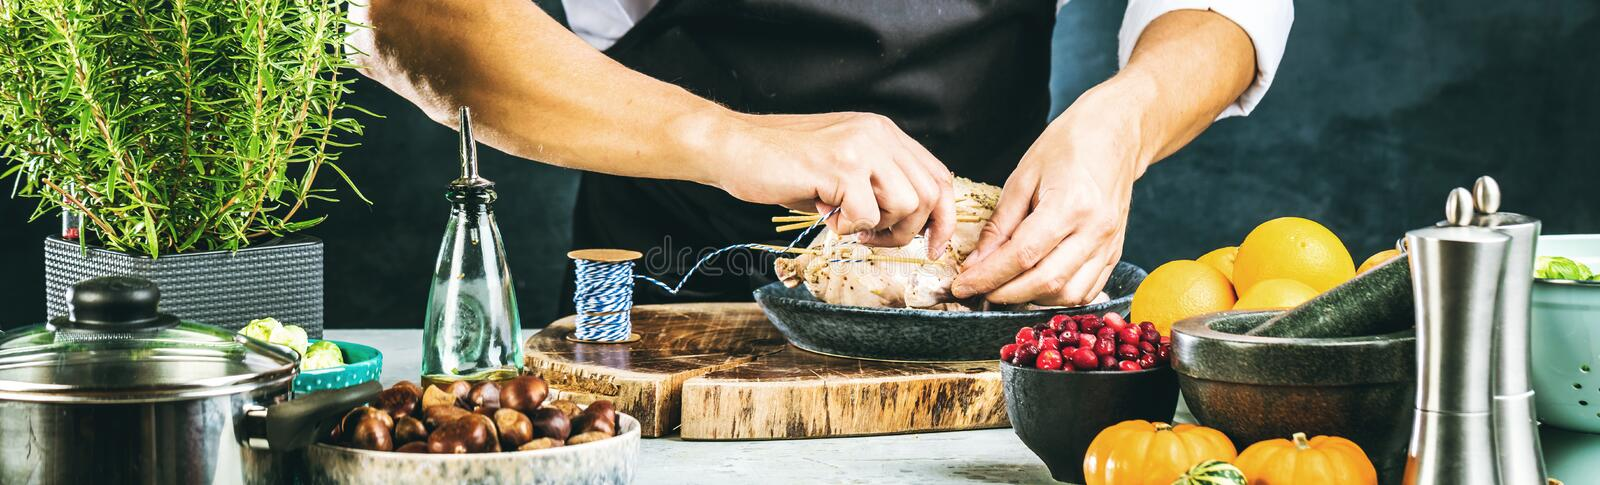 Chef preparing stufet duck in kitchen or market for christmas. royalty free stock images